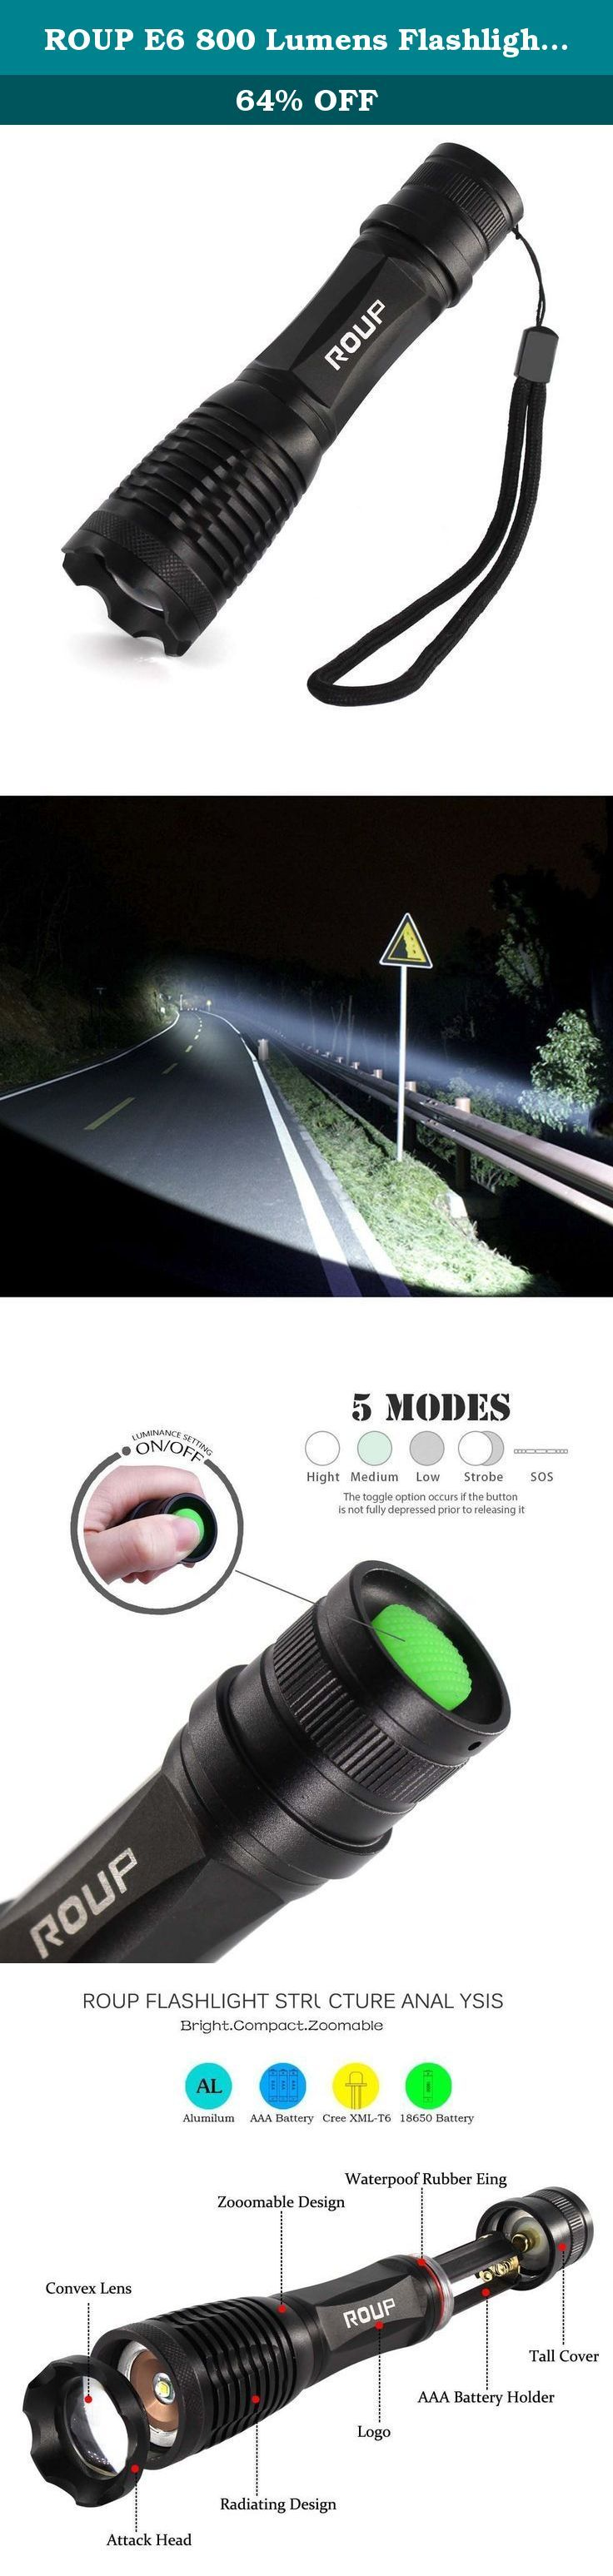 ROUP E6 800 Lumens Flashlight, Tactical Flashlight, CREE LED Flashlight, Handheld Flashlight, Zoomable, 5 Light Modes, Water Resistant, Adjustable Focus Torch with 18650 Battery and Charger. Product Description: 1. Made of high quality 6061T aluminum alloy, it's sturdy and durable 2. Lamp base: CREE XM-L T6 LED bulb, high power LED bulb, no need to consider replacing the cap for the whole life 3. Water resistant, but don't put it into water 4. 5 Mode: high/medium/low/strobe/SOS 5. Powered...